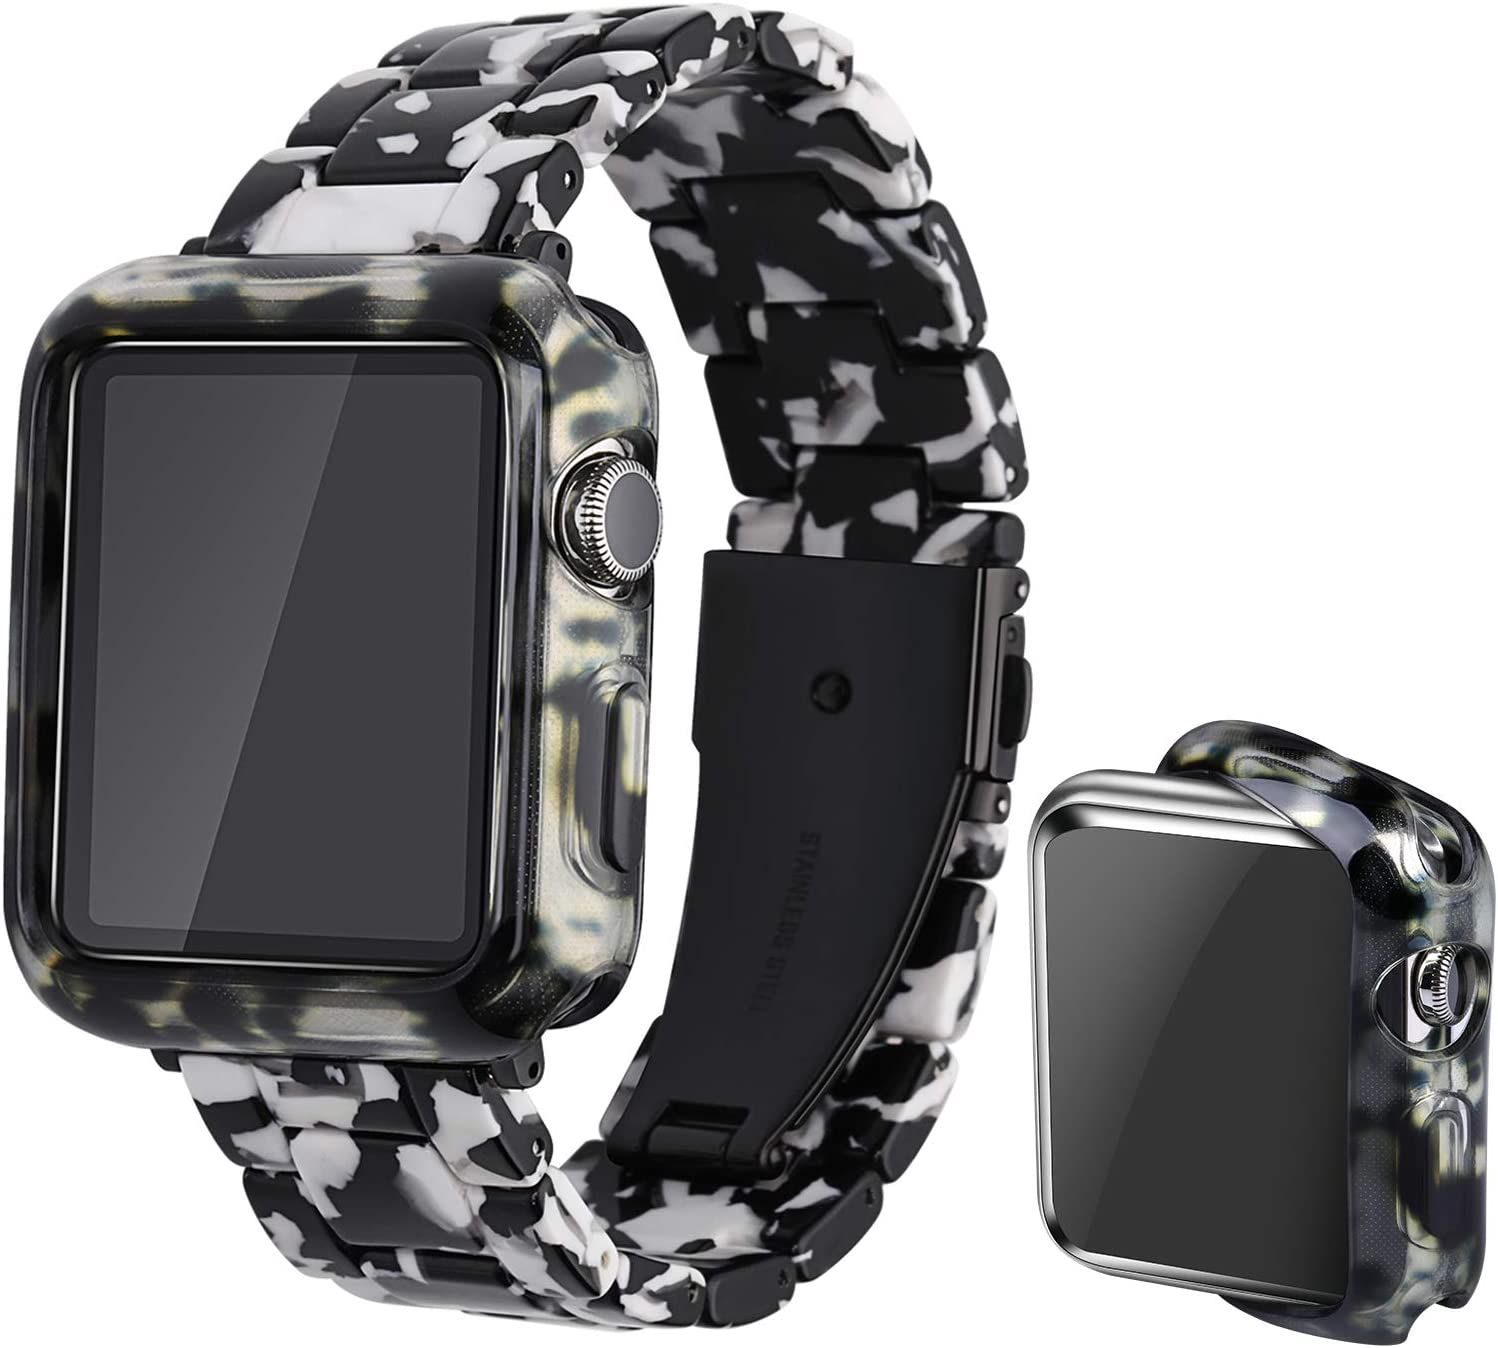 Omter Band with Case Compatible with Apple Watch 44mm 42mm 40mm 38mm, Women Men Fashion Resin Band Strap Compatible with iWatch Series SE/6/5/4,Series 3/2/1 (Cow spot, 44mm)